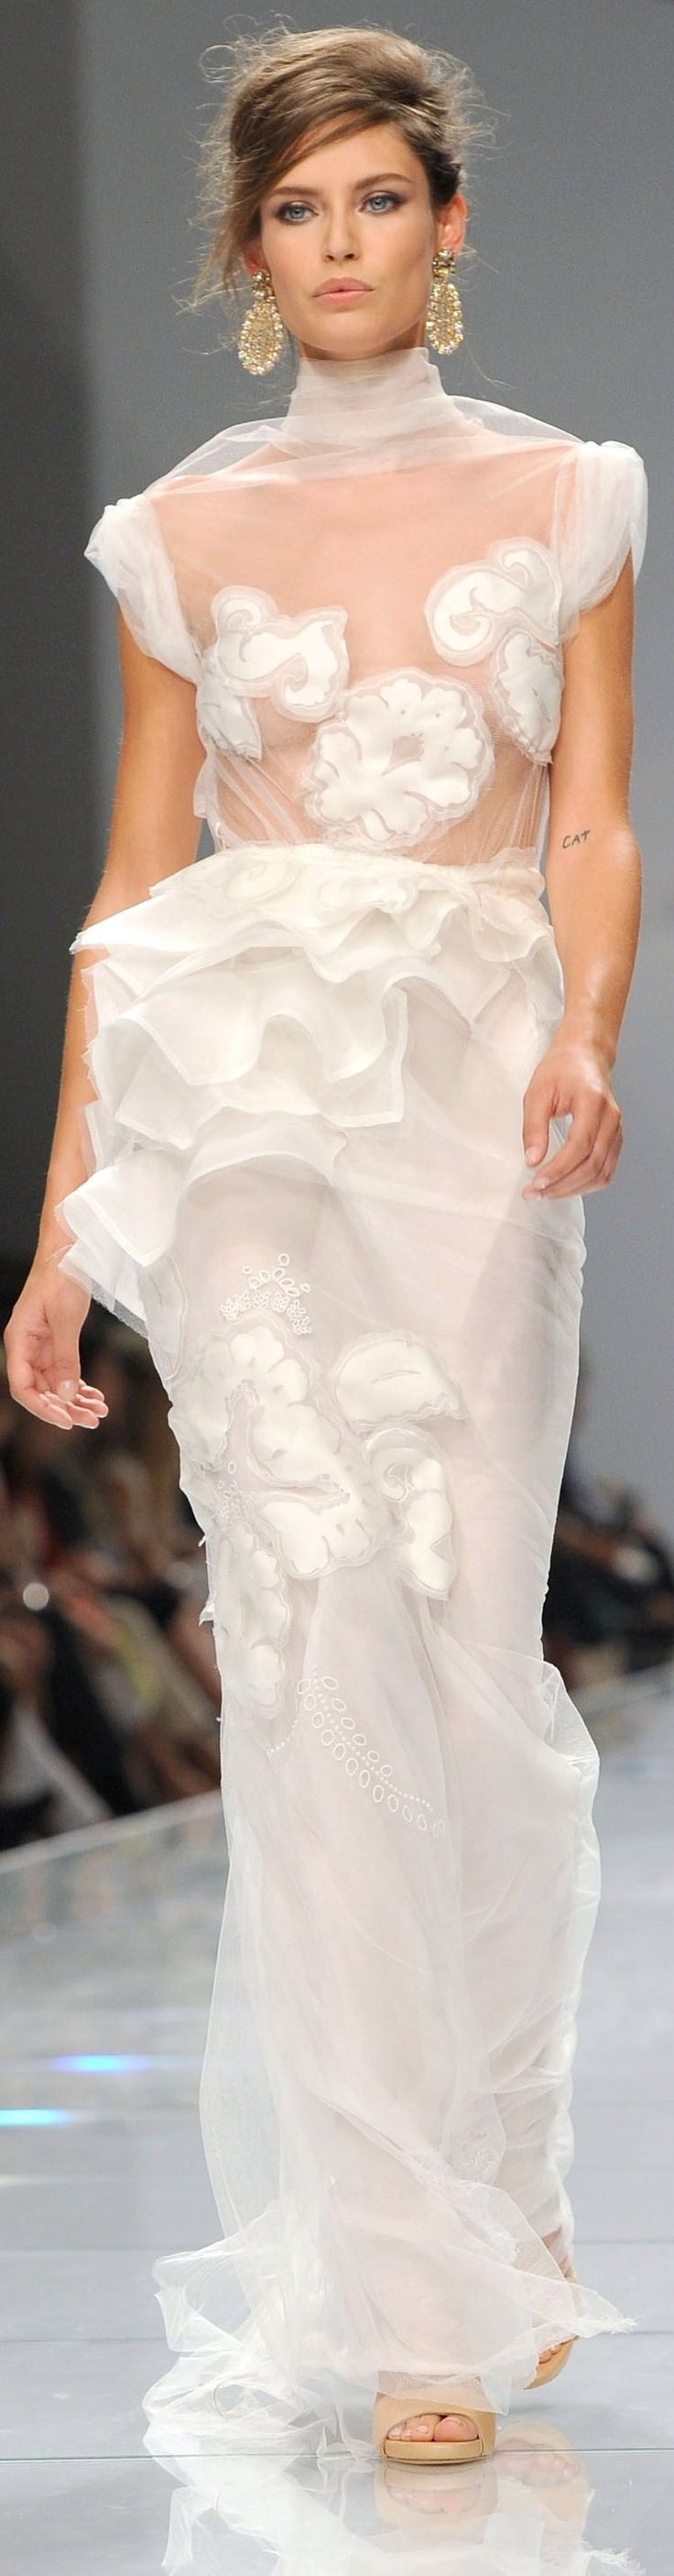 Sheer Stunning! By Ermanno Scervino